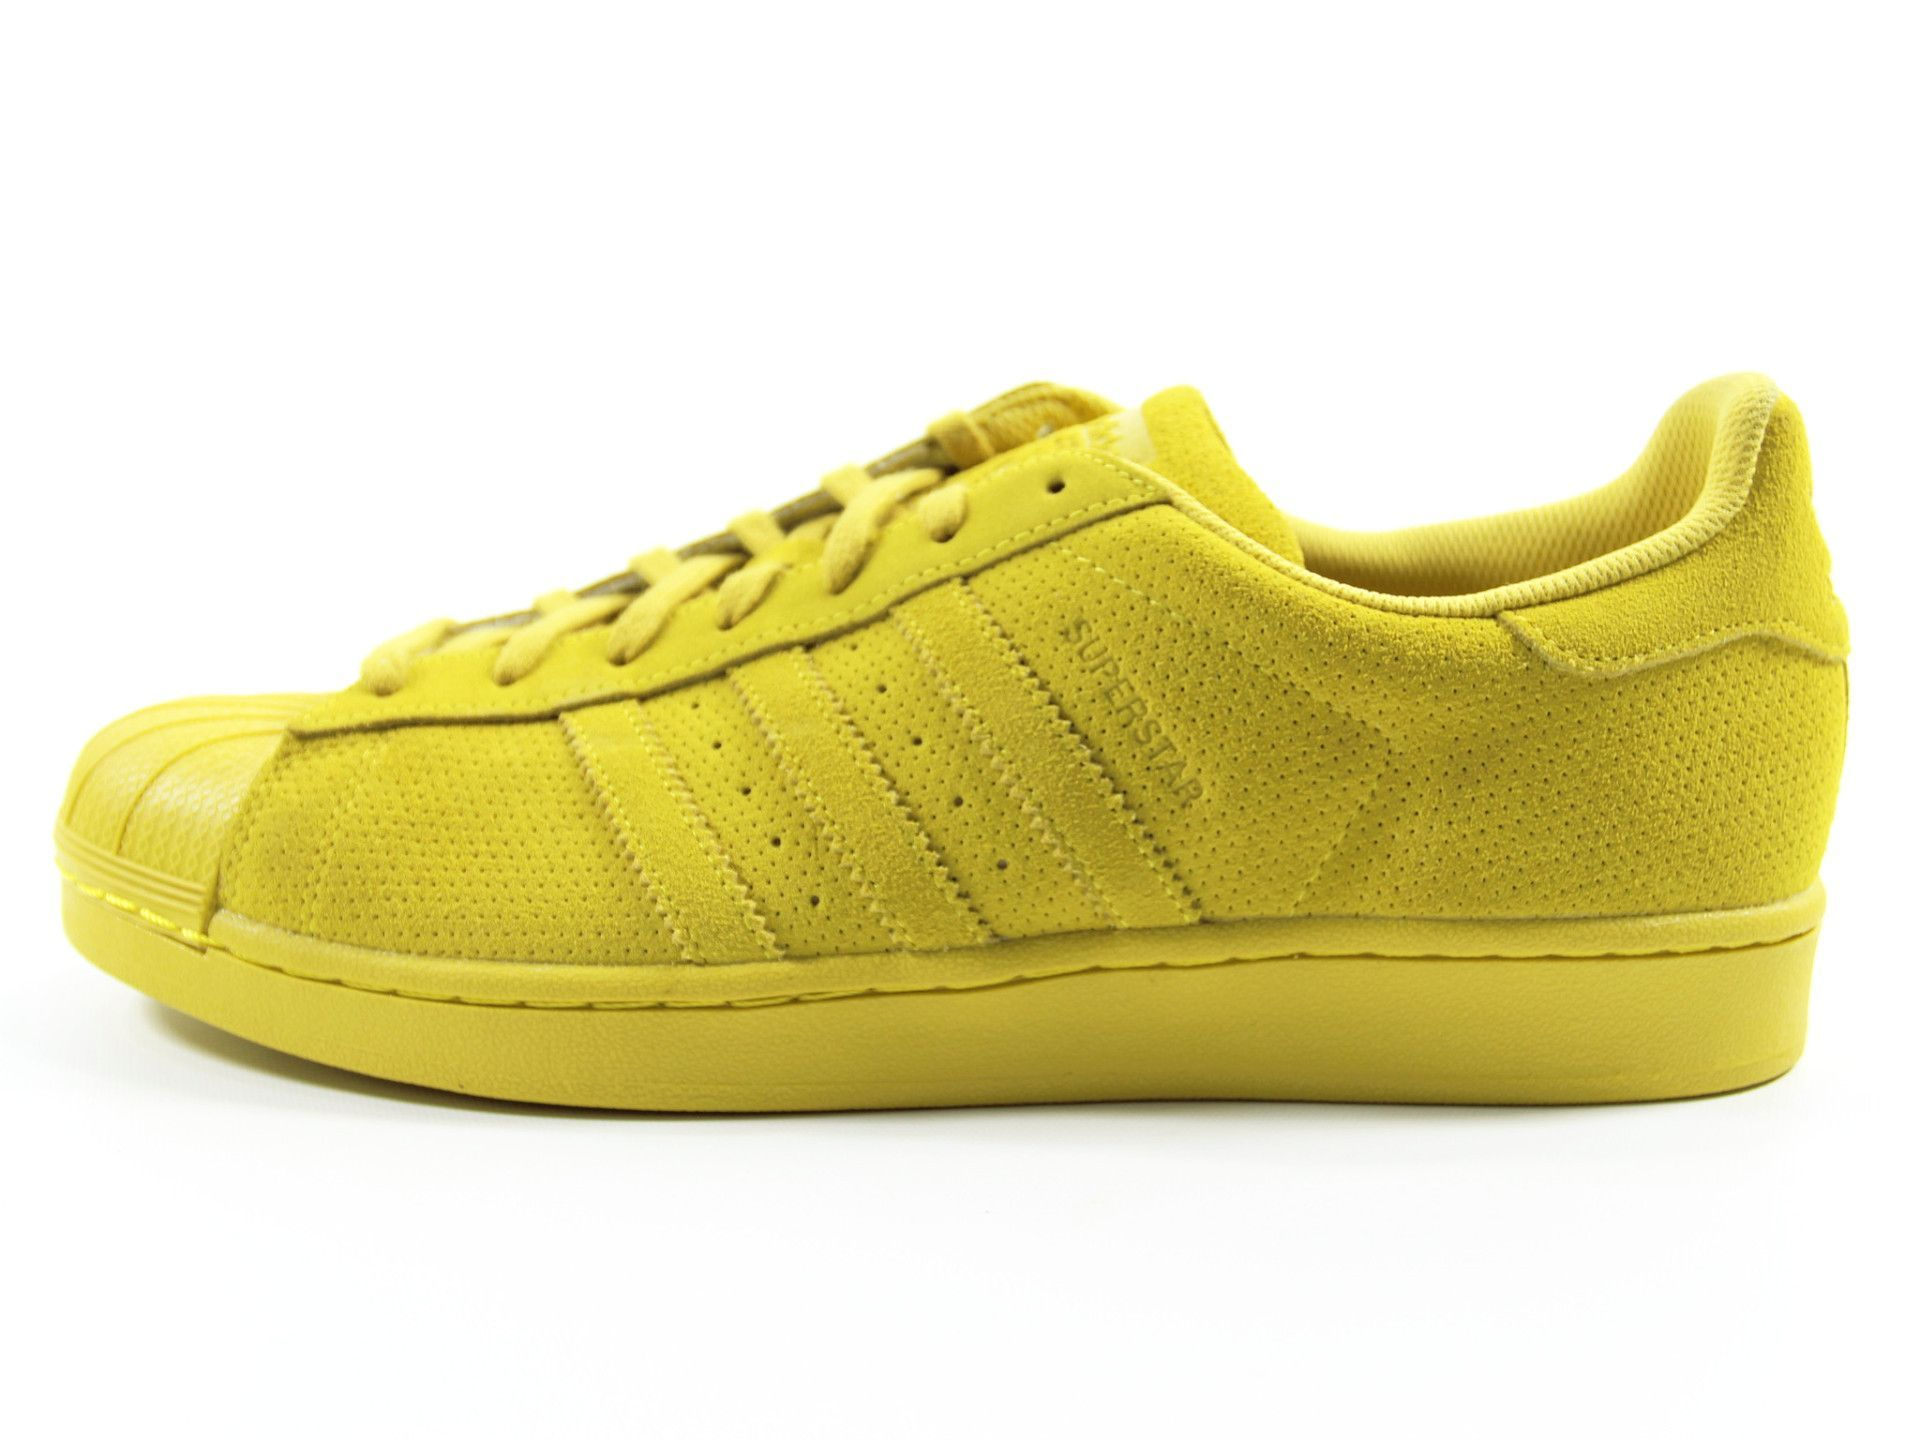 best service ab427 b6f72 Adidas Originals Superstar RT Monocrome Shell Toe Suede Trainers Size 13 ( Yellow)